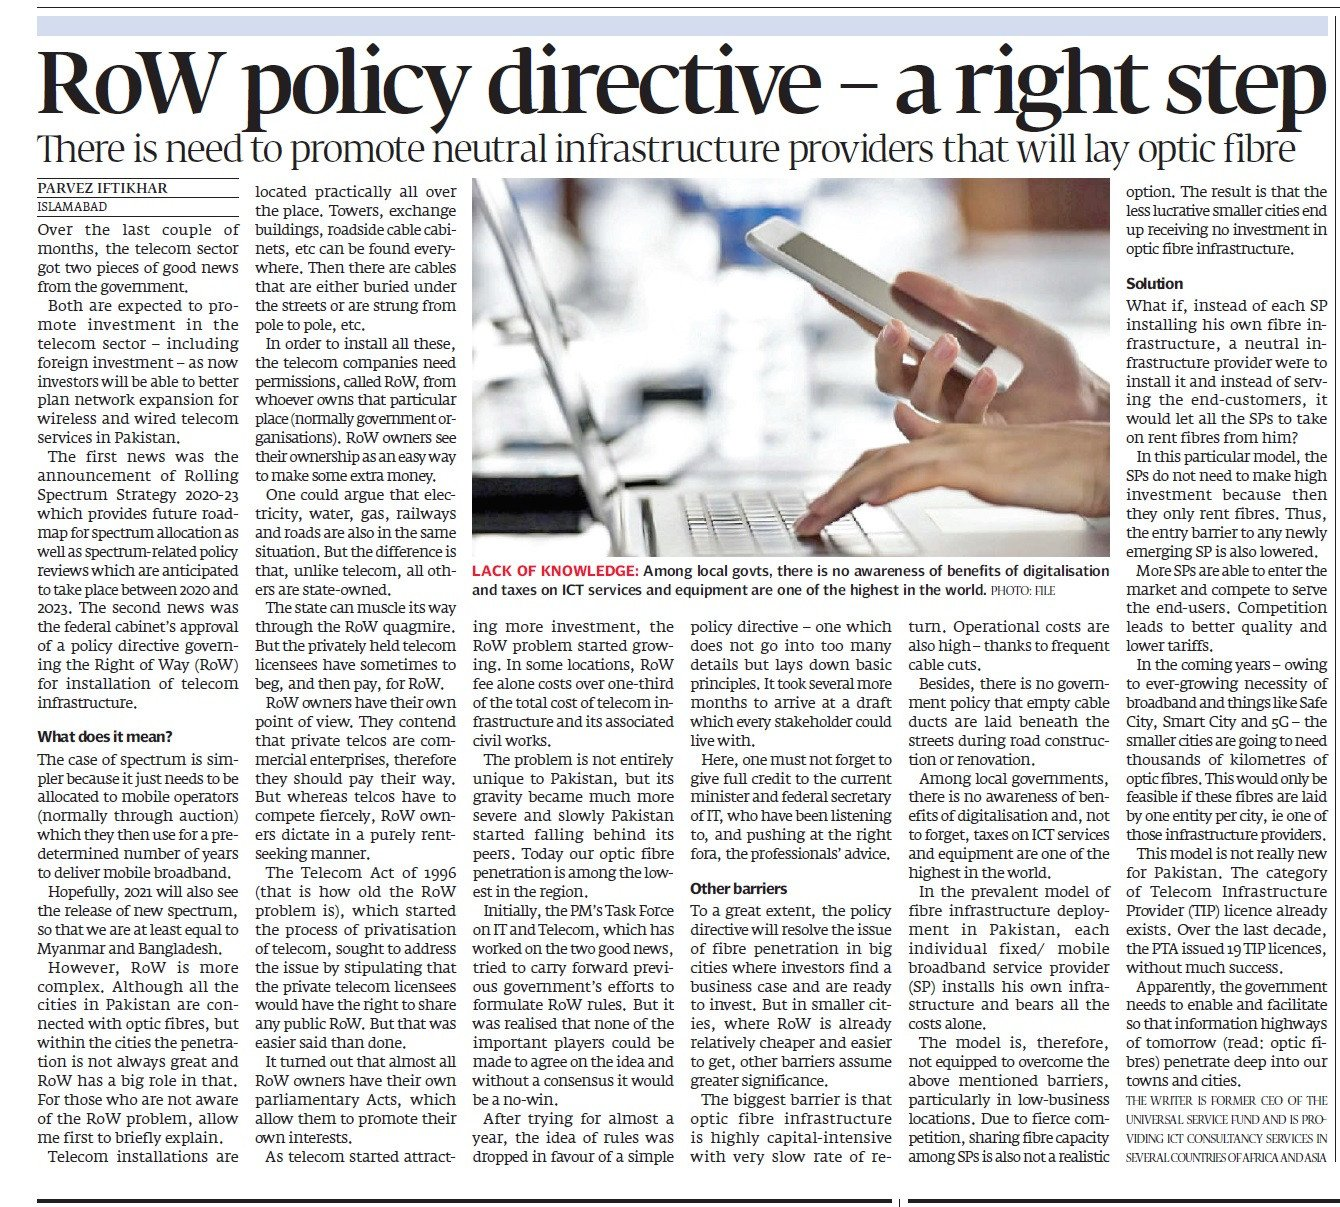 RoW Policy Directive Article, 01-Feb-2021